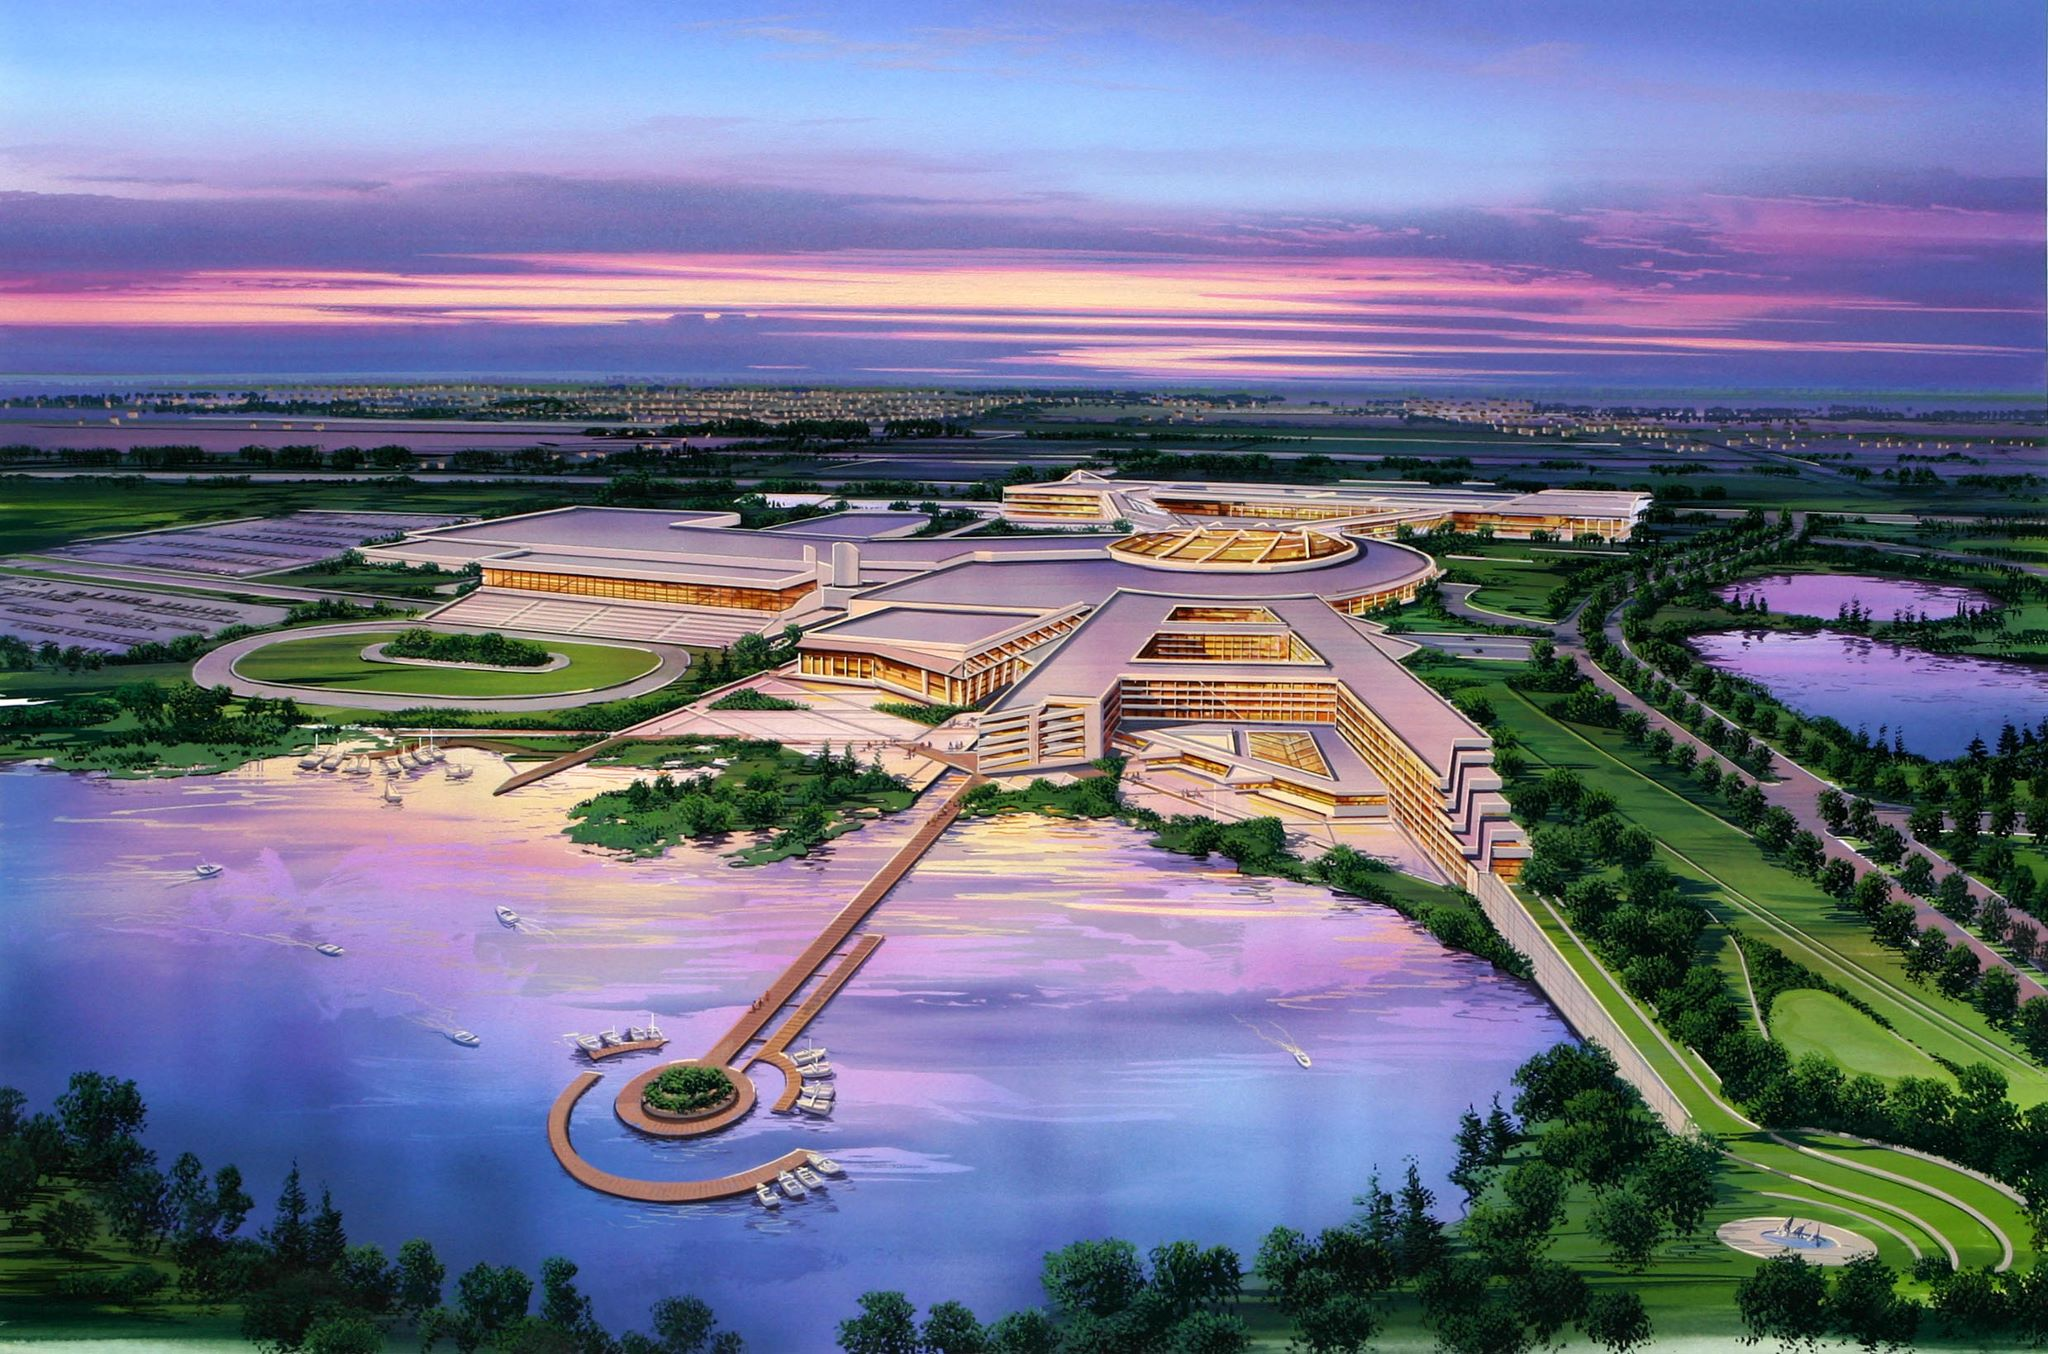 Opinion: Menominee Nation exploits loophole to pursue casino